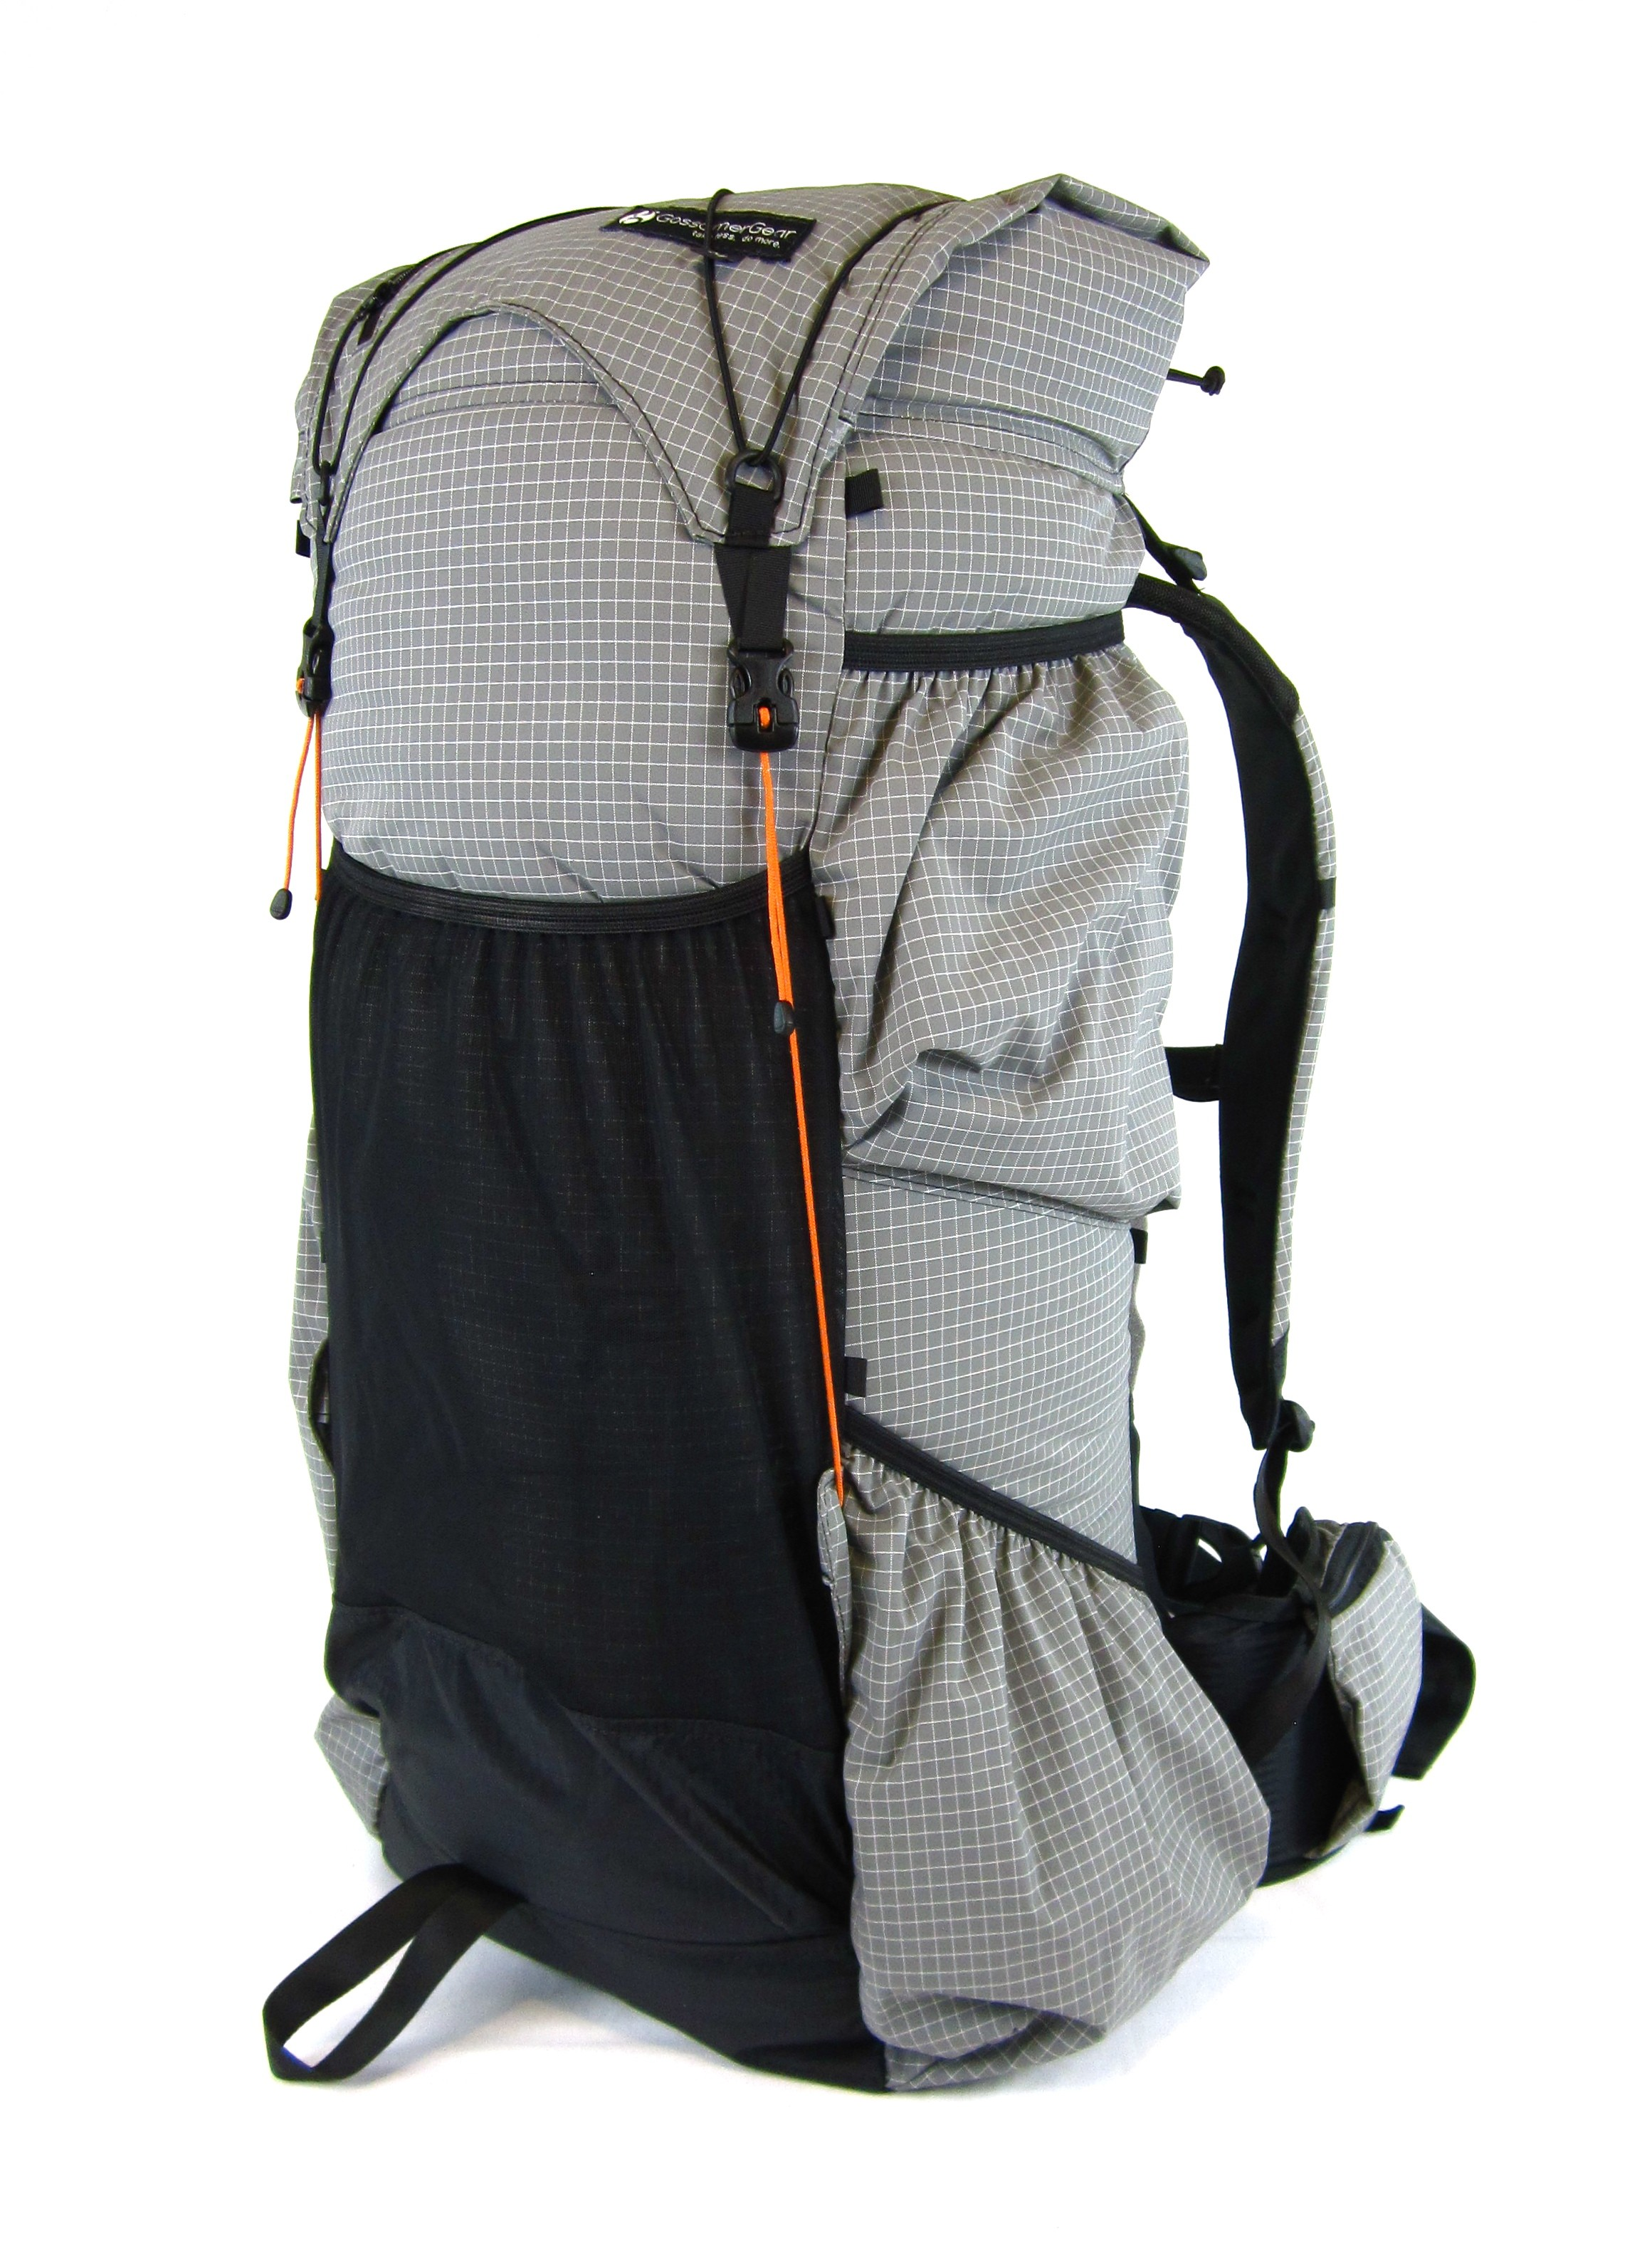 Rear of Gossamer Gear Mariposa Backpack